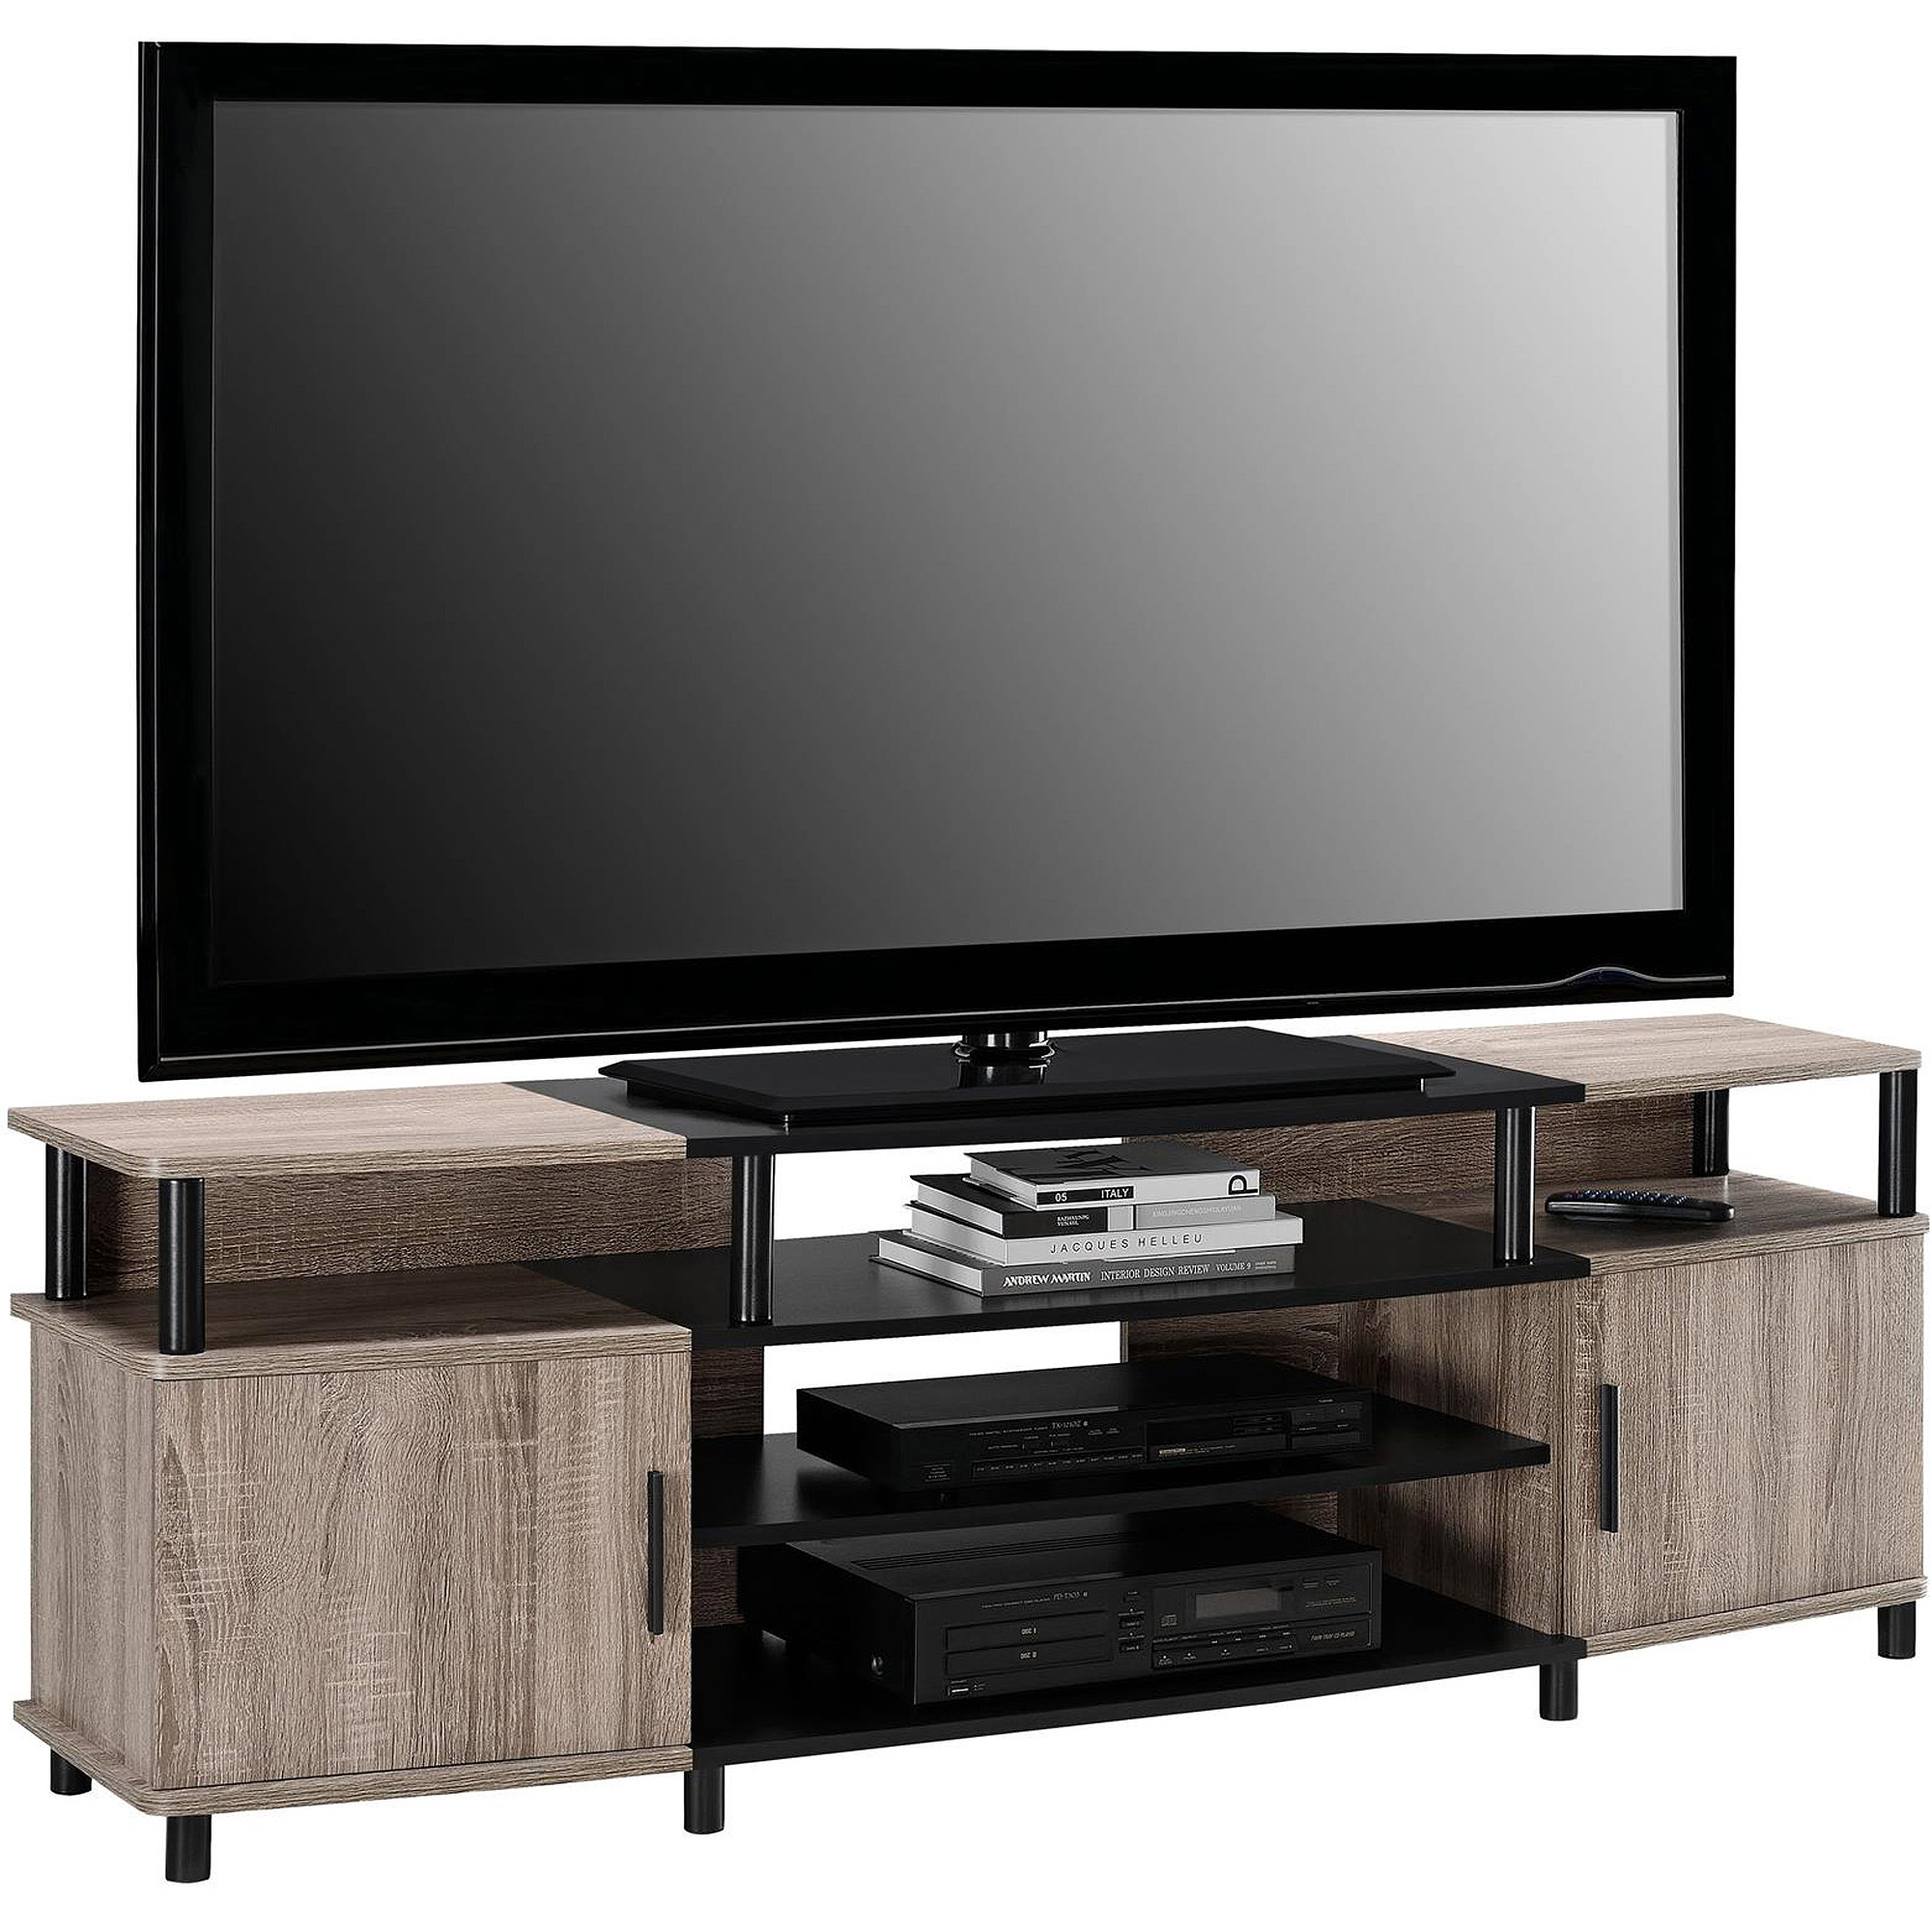 Ameriwood Home Carson Tv Stand For Tvs Up To 70 Wide Cherry Ebay # Muebles Rack Para Tv